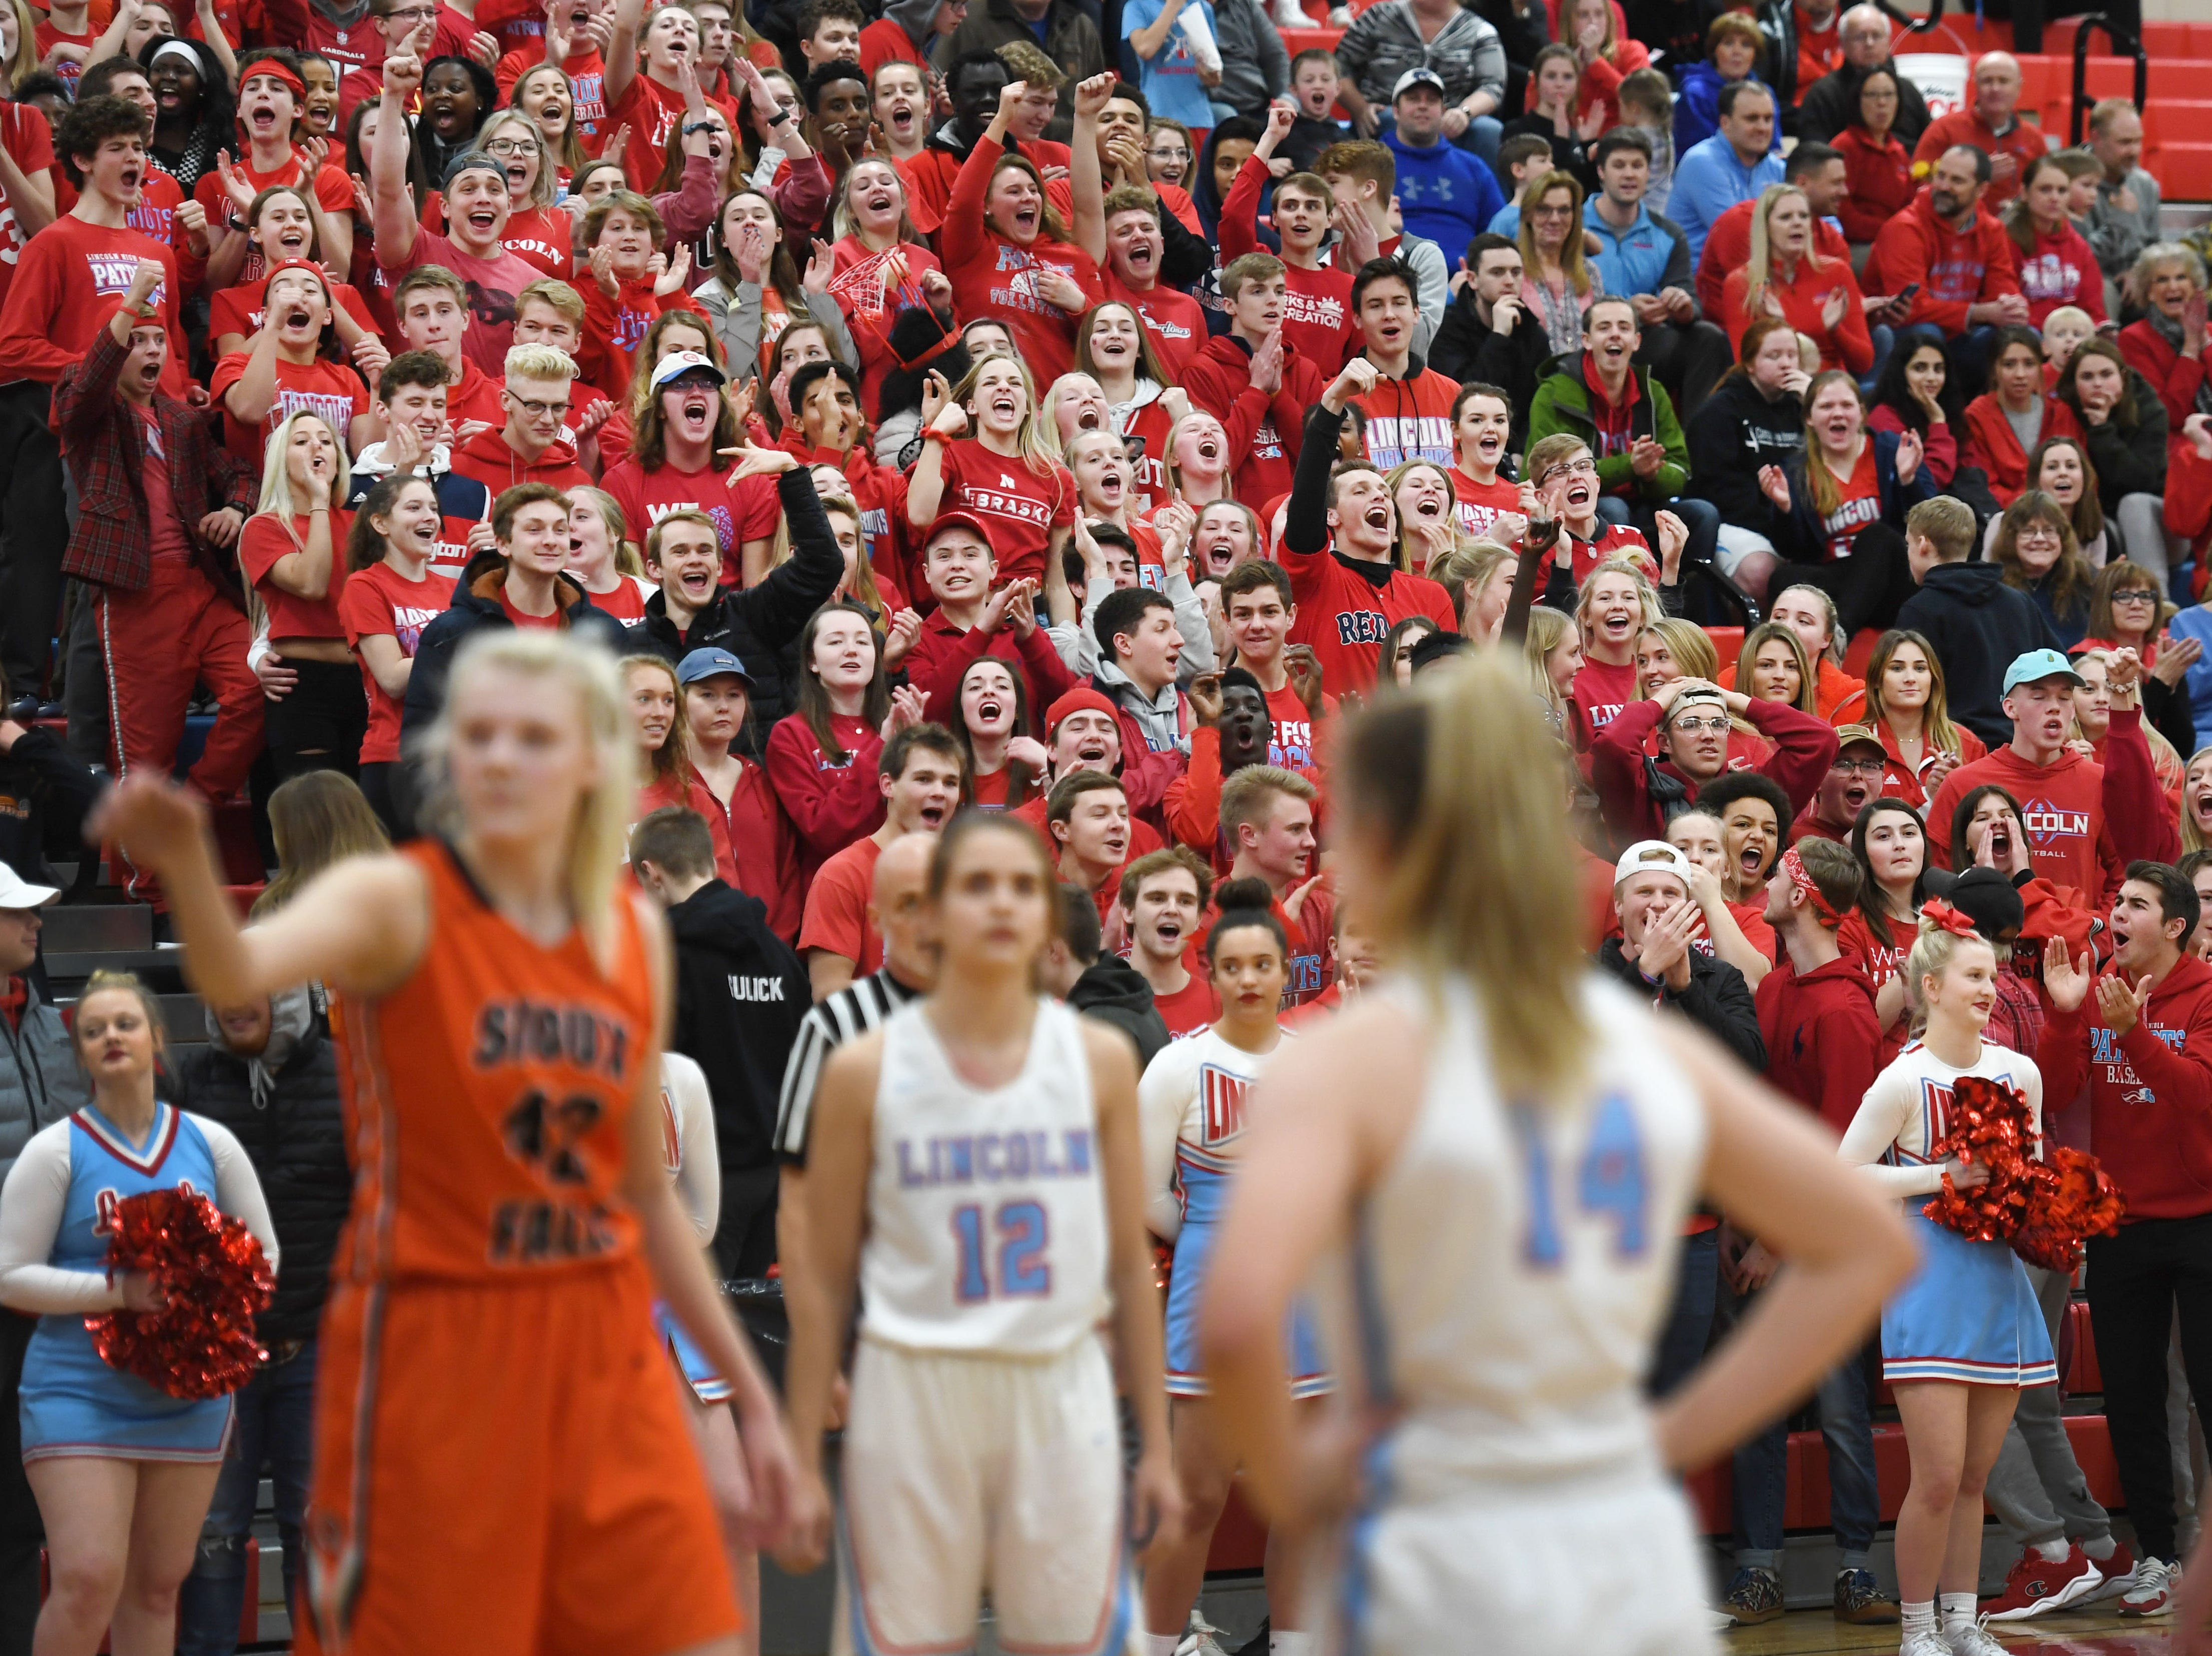 Lincoln's student section attempts to distract Washington's Rylyn Fink during a free throw Thursday, Jan. 24, at Lincoln. Lincoln won 63-62 against Washington.